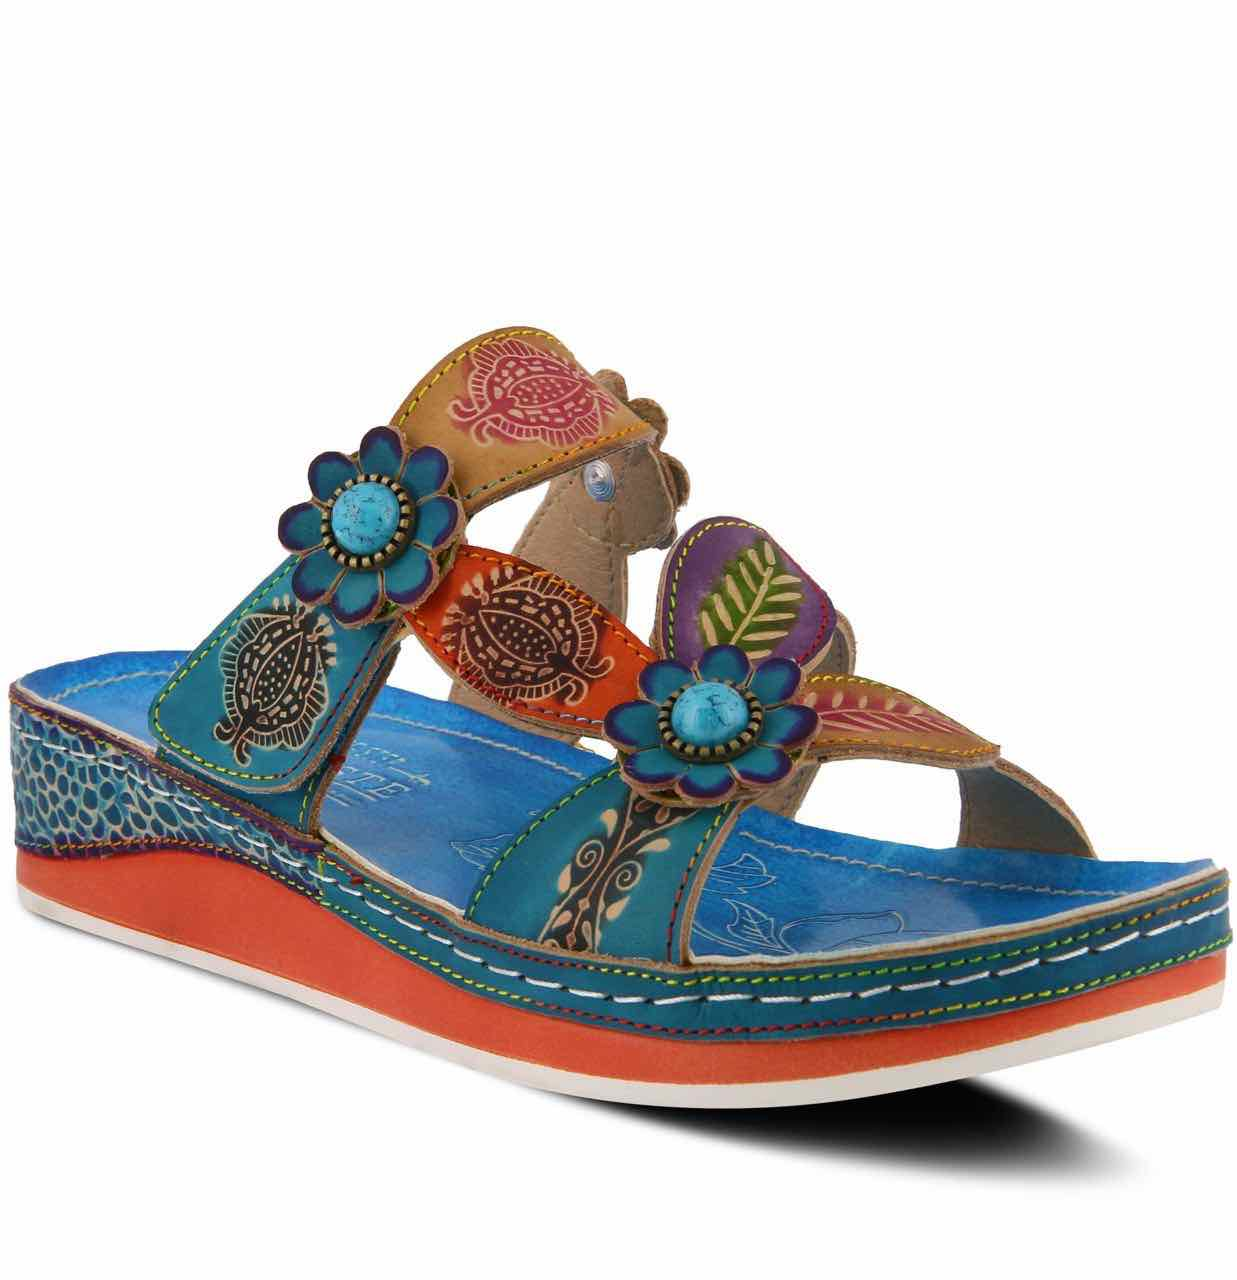 55e42a7aa3 L'Artiste by Spring Step PILLOW Slide Sandals Turquoise Canada USA